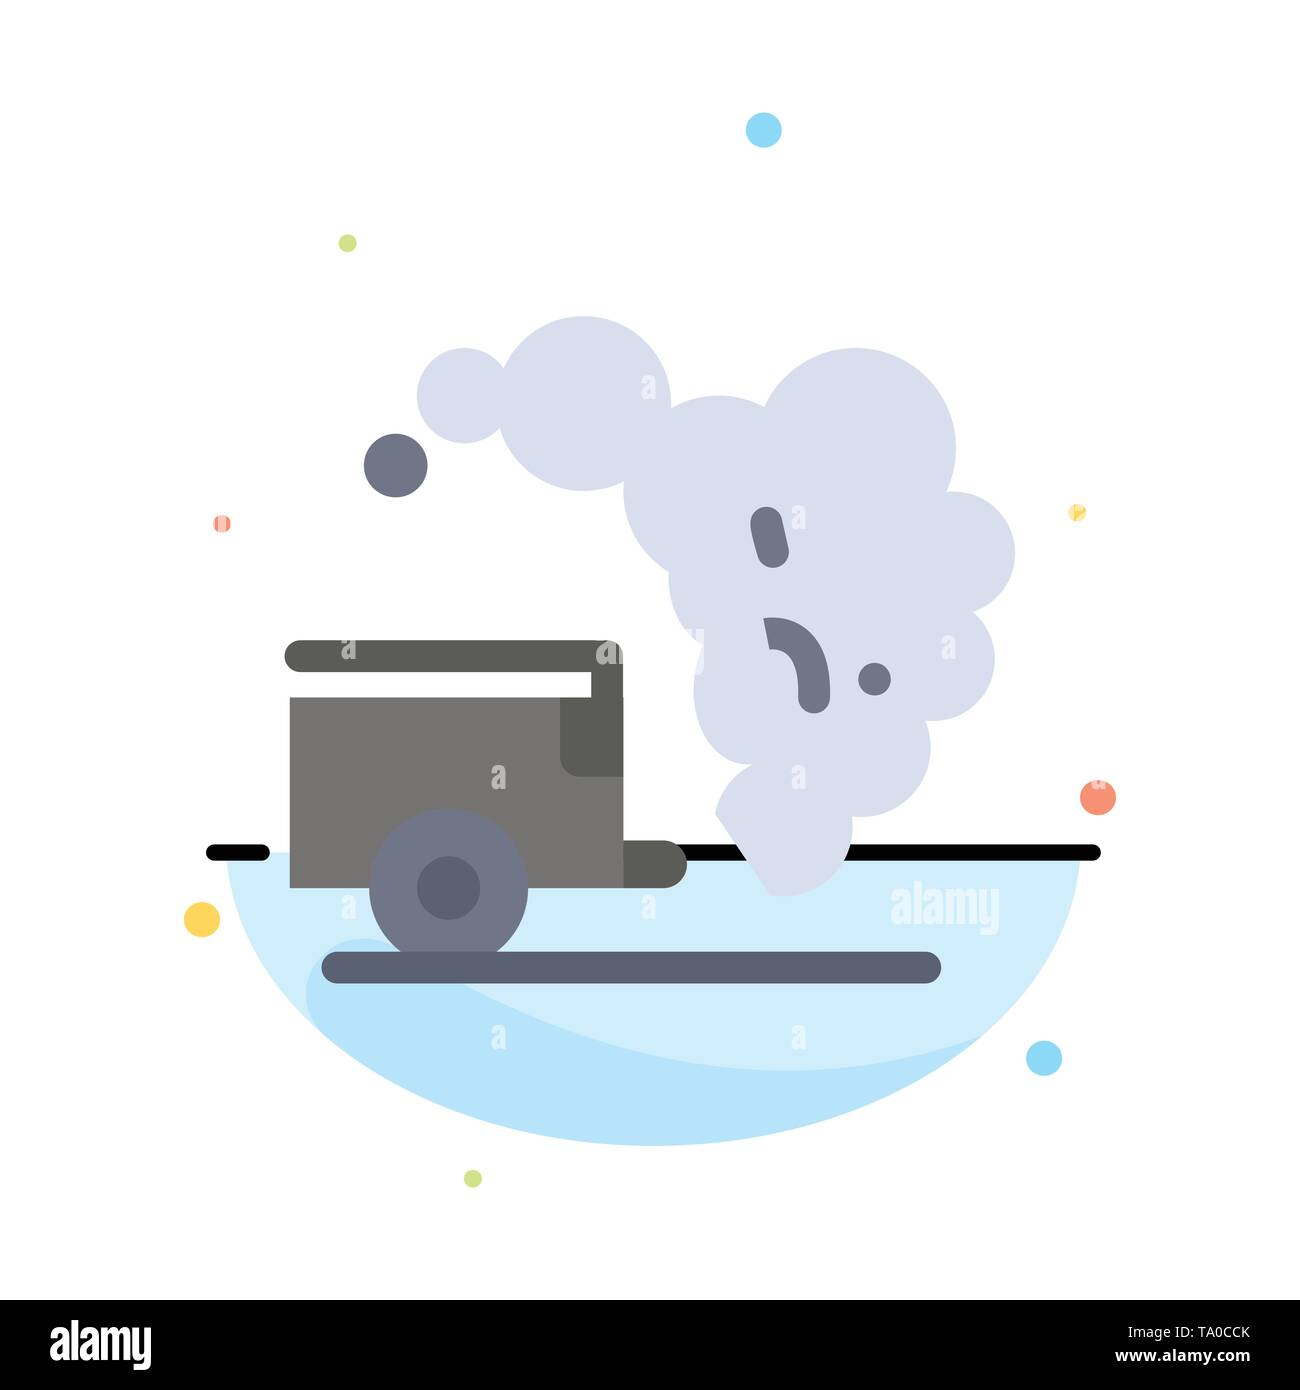 Dump, Environment, Garbage, Pollution Abstract Flat Color Icon Template - Stock Image